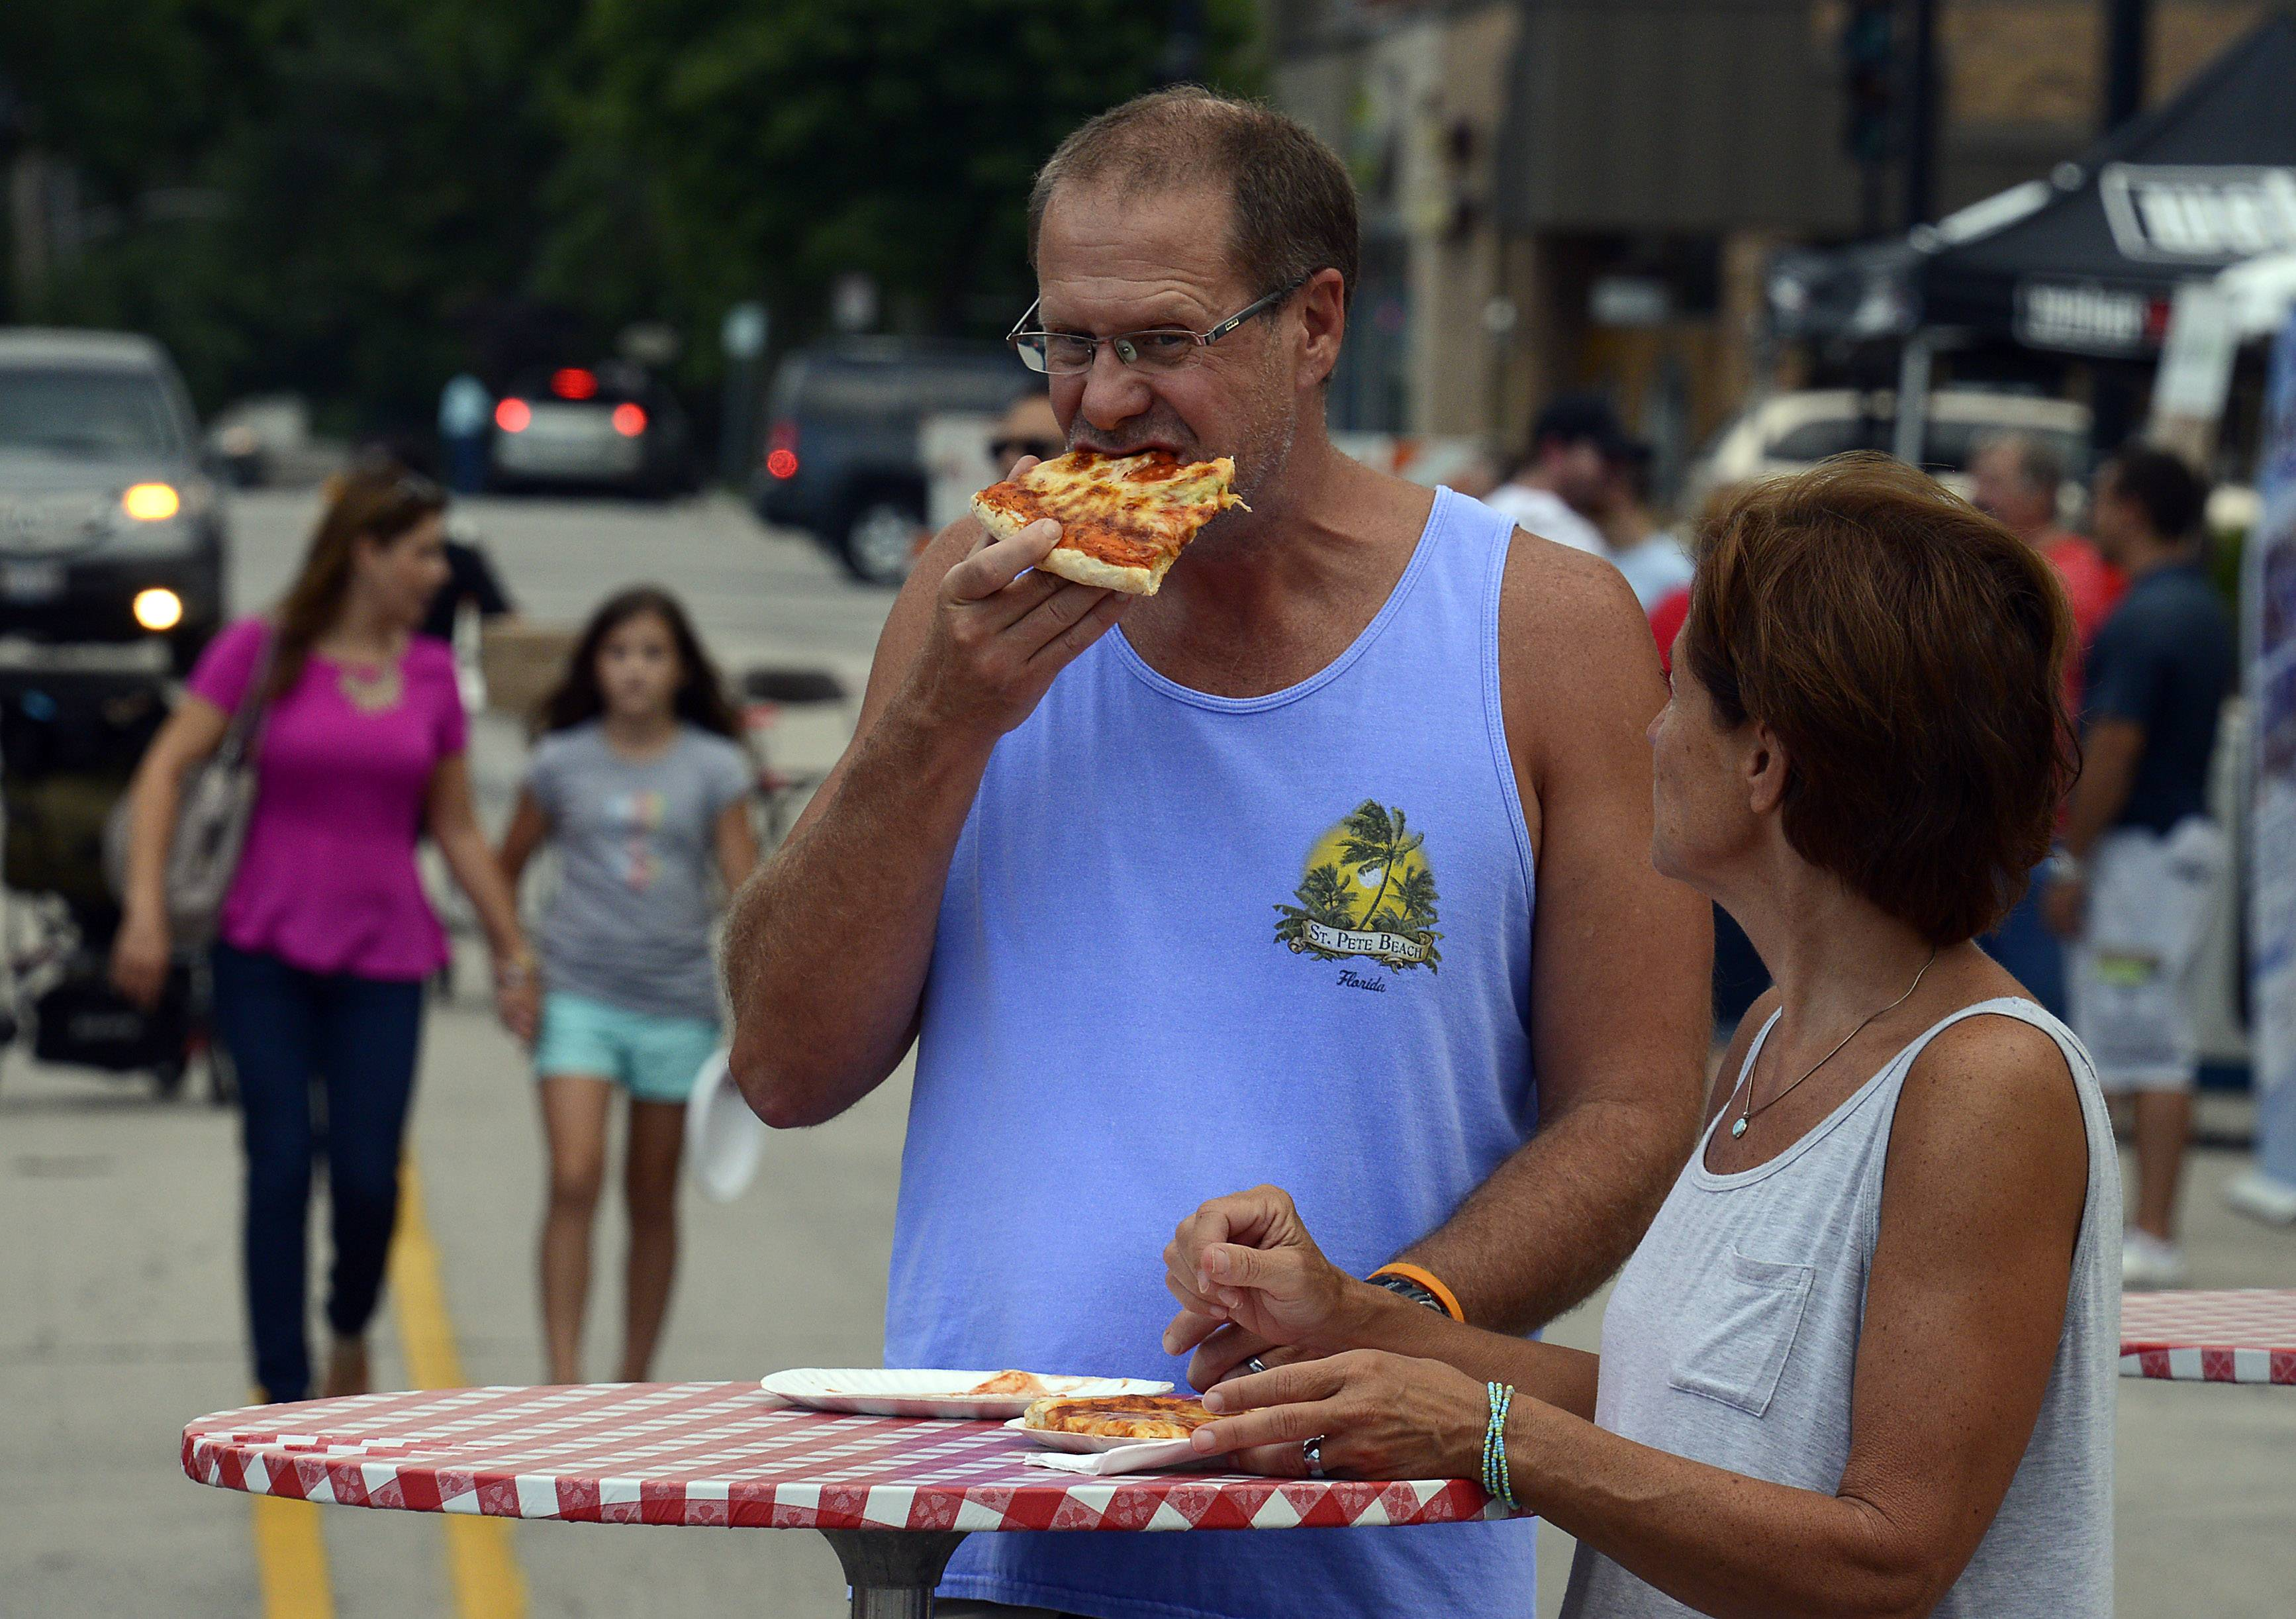 Kerry and Karen Richardson of Palatine chow down on pizza at the Palatine Street Fest on Friday.